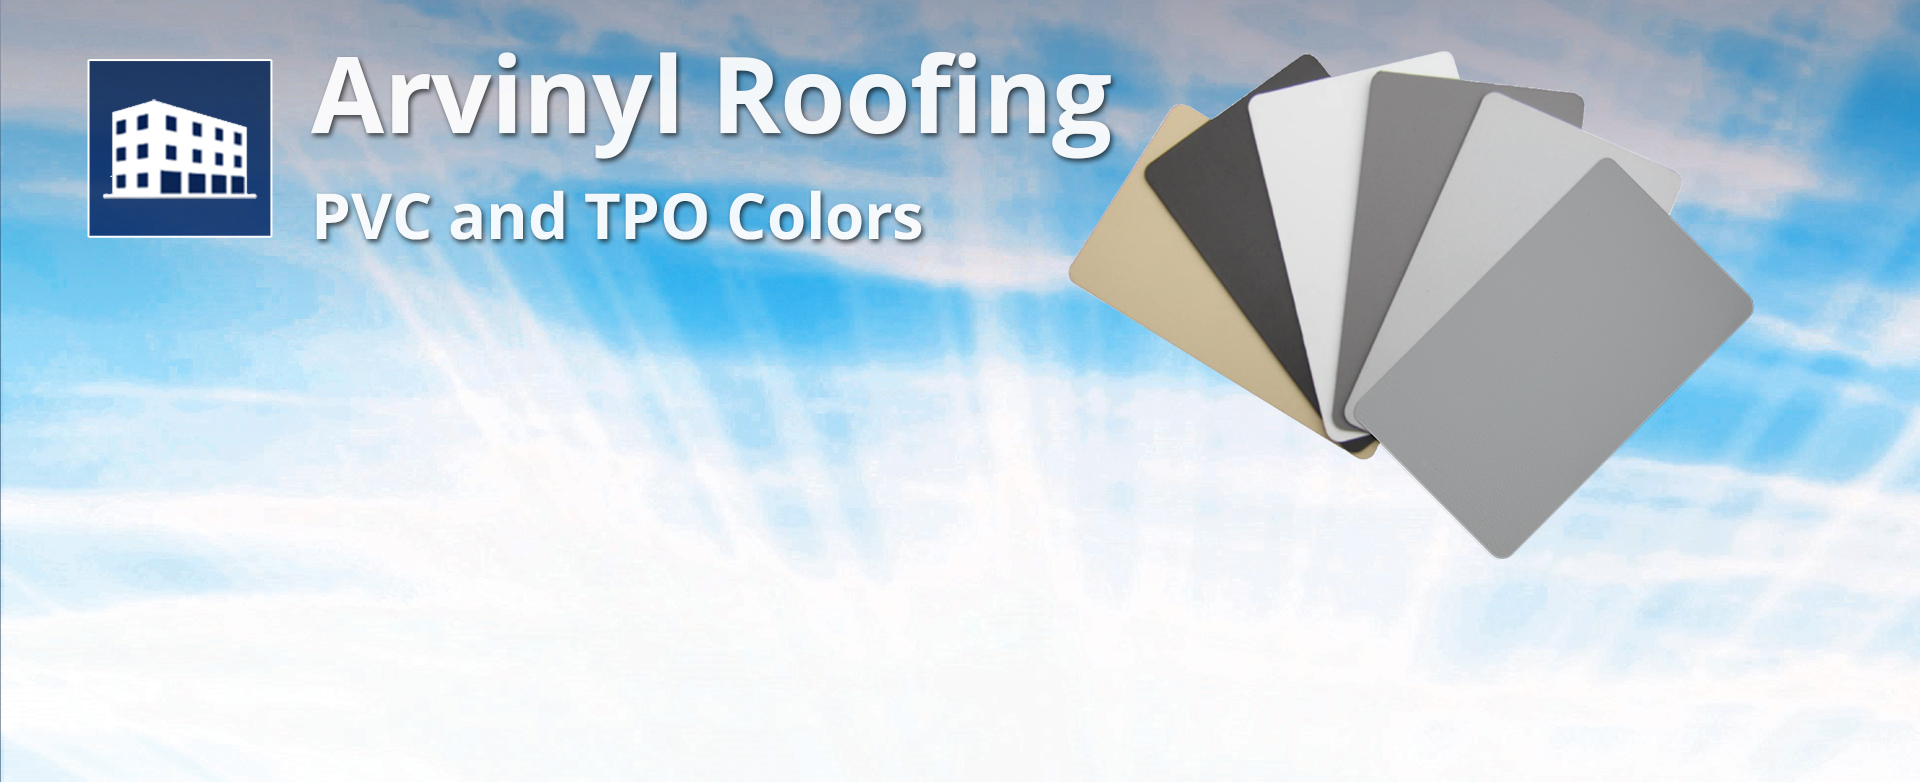 PVC and TPO colors